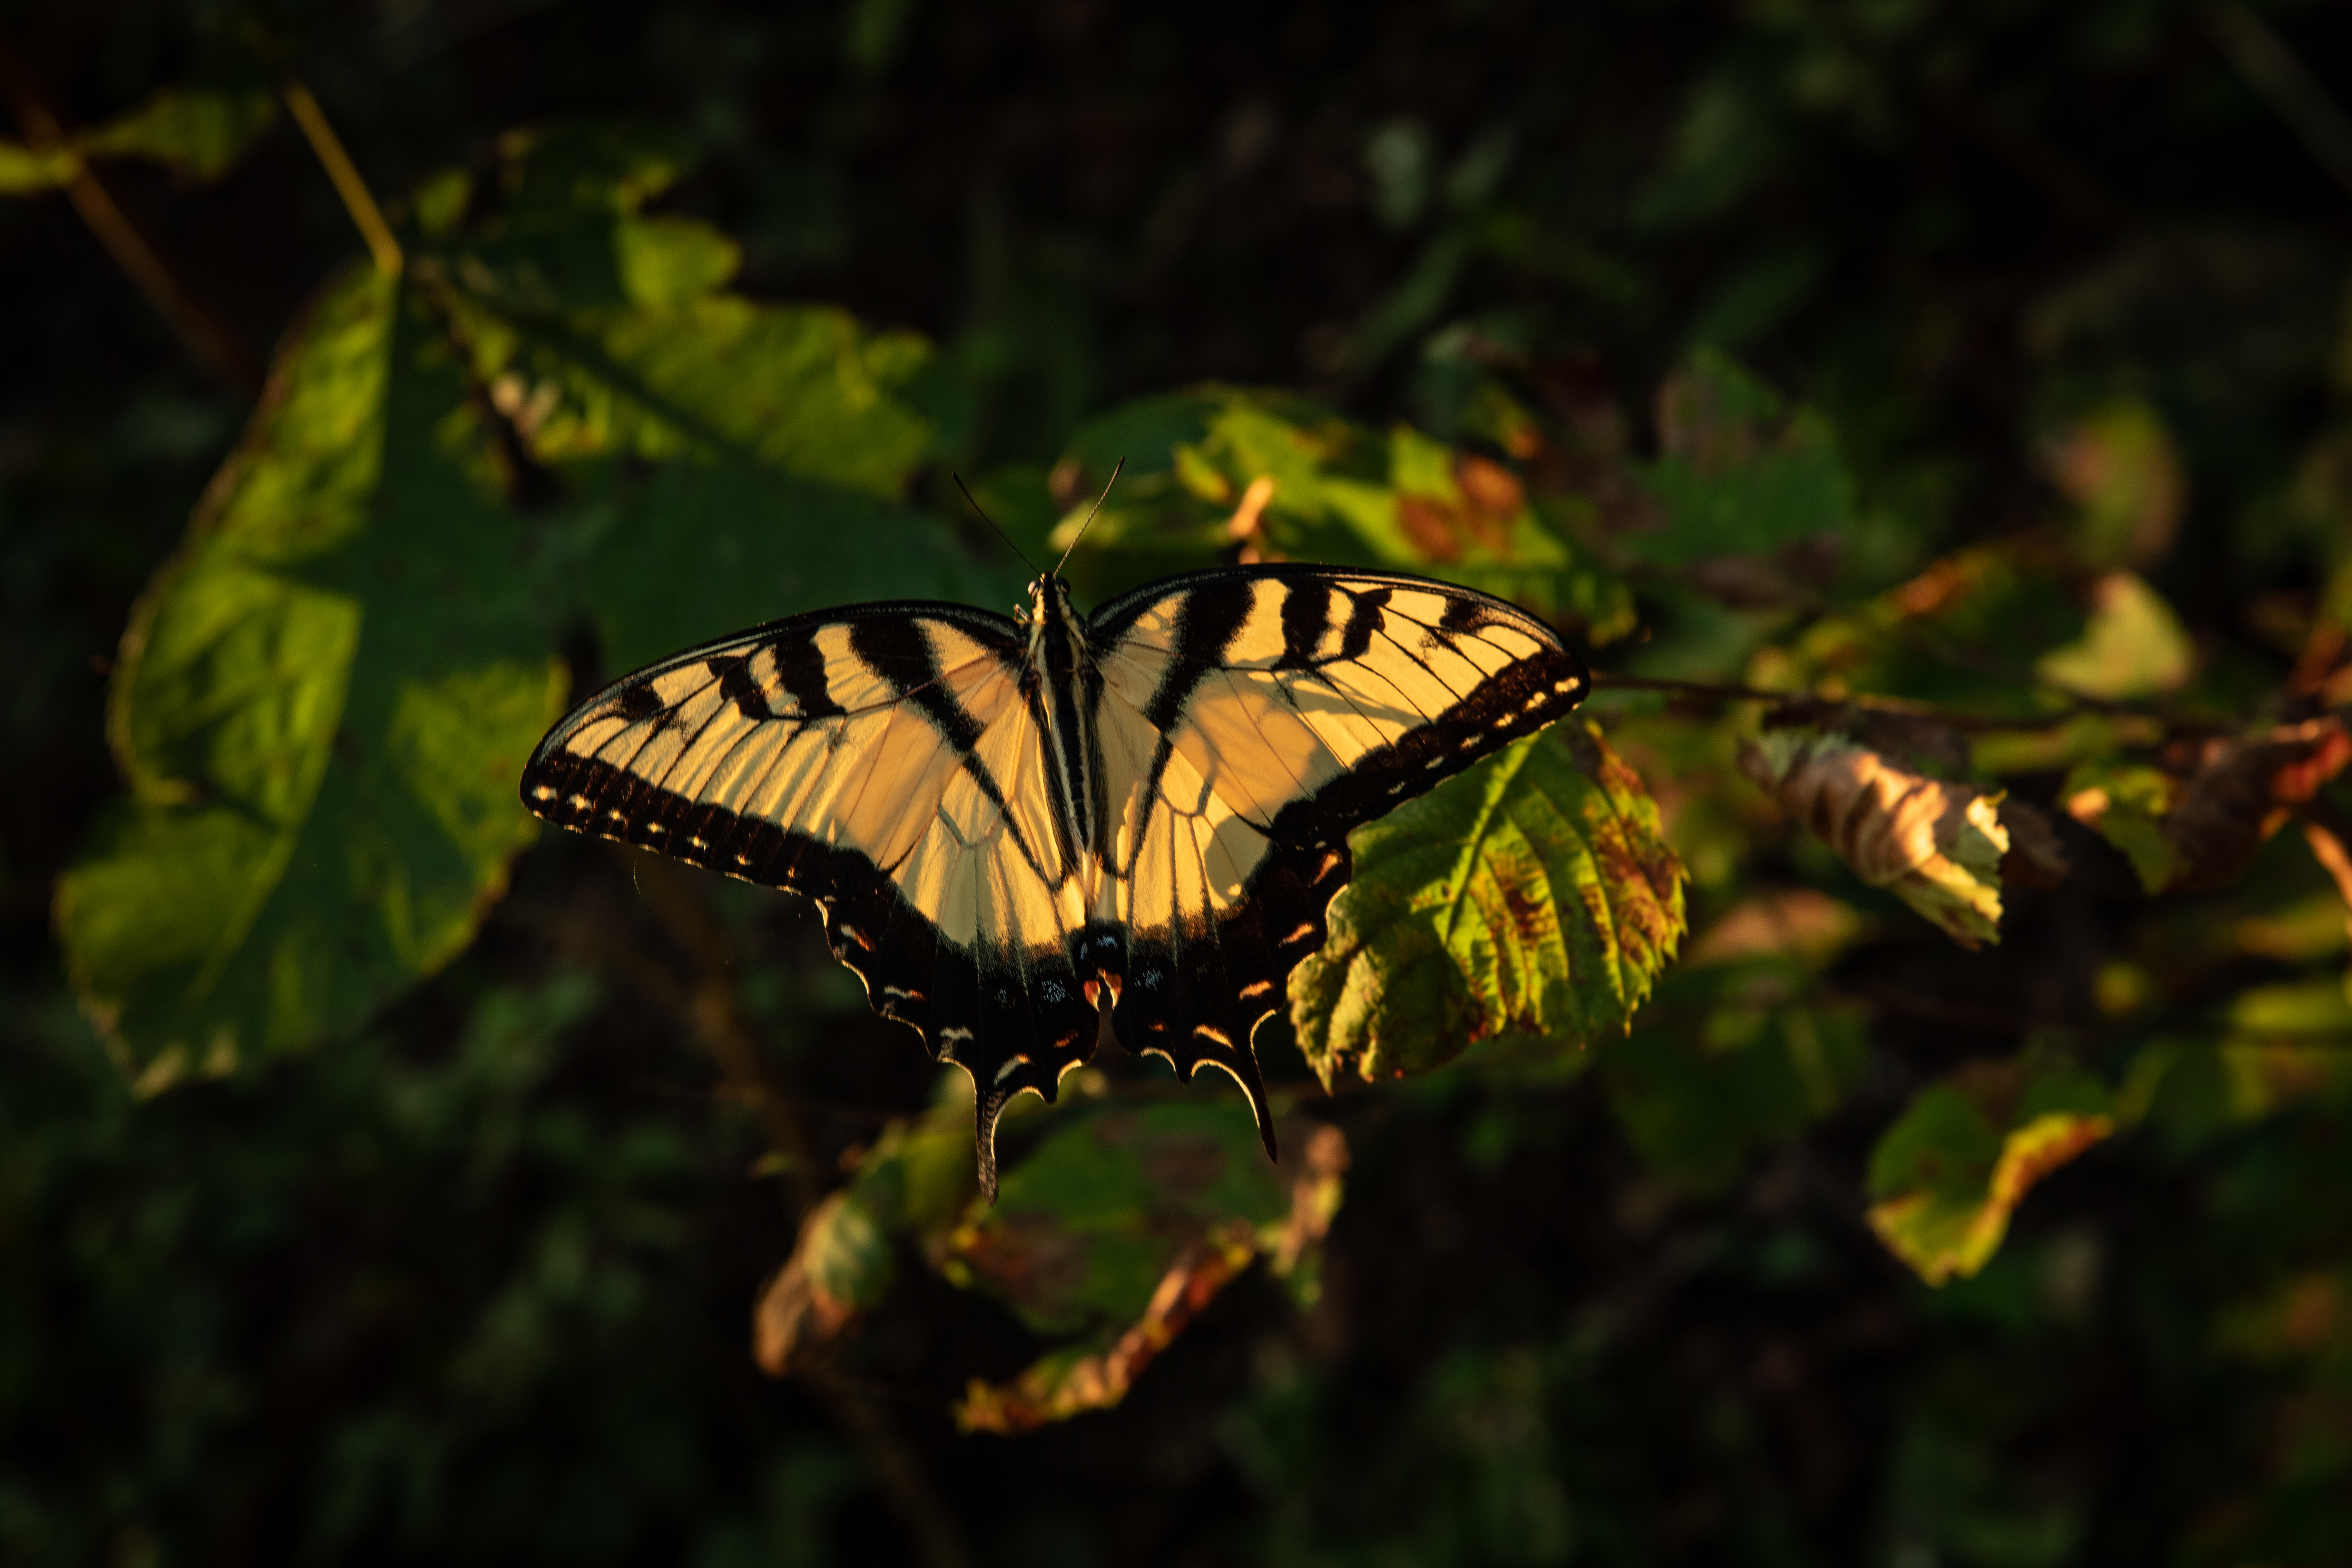 Eastern tiger swallowtail butterfly on the trail